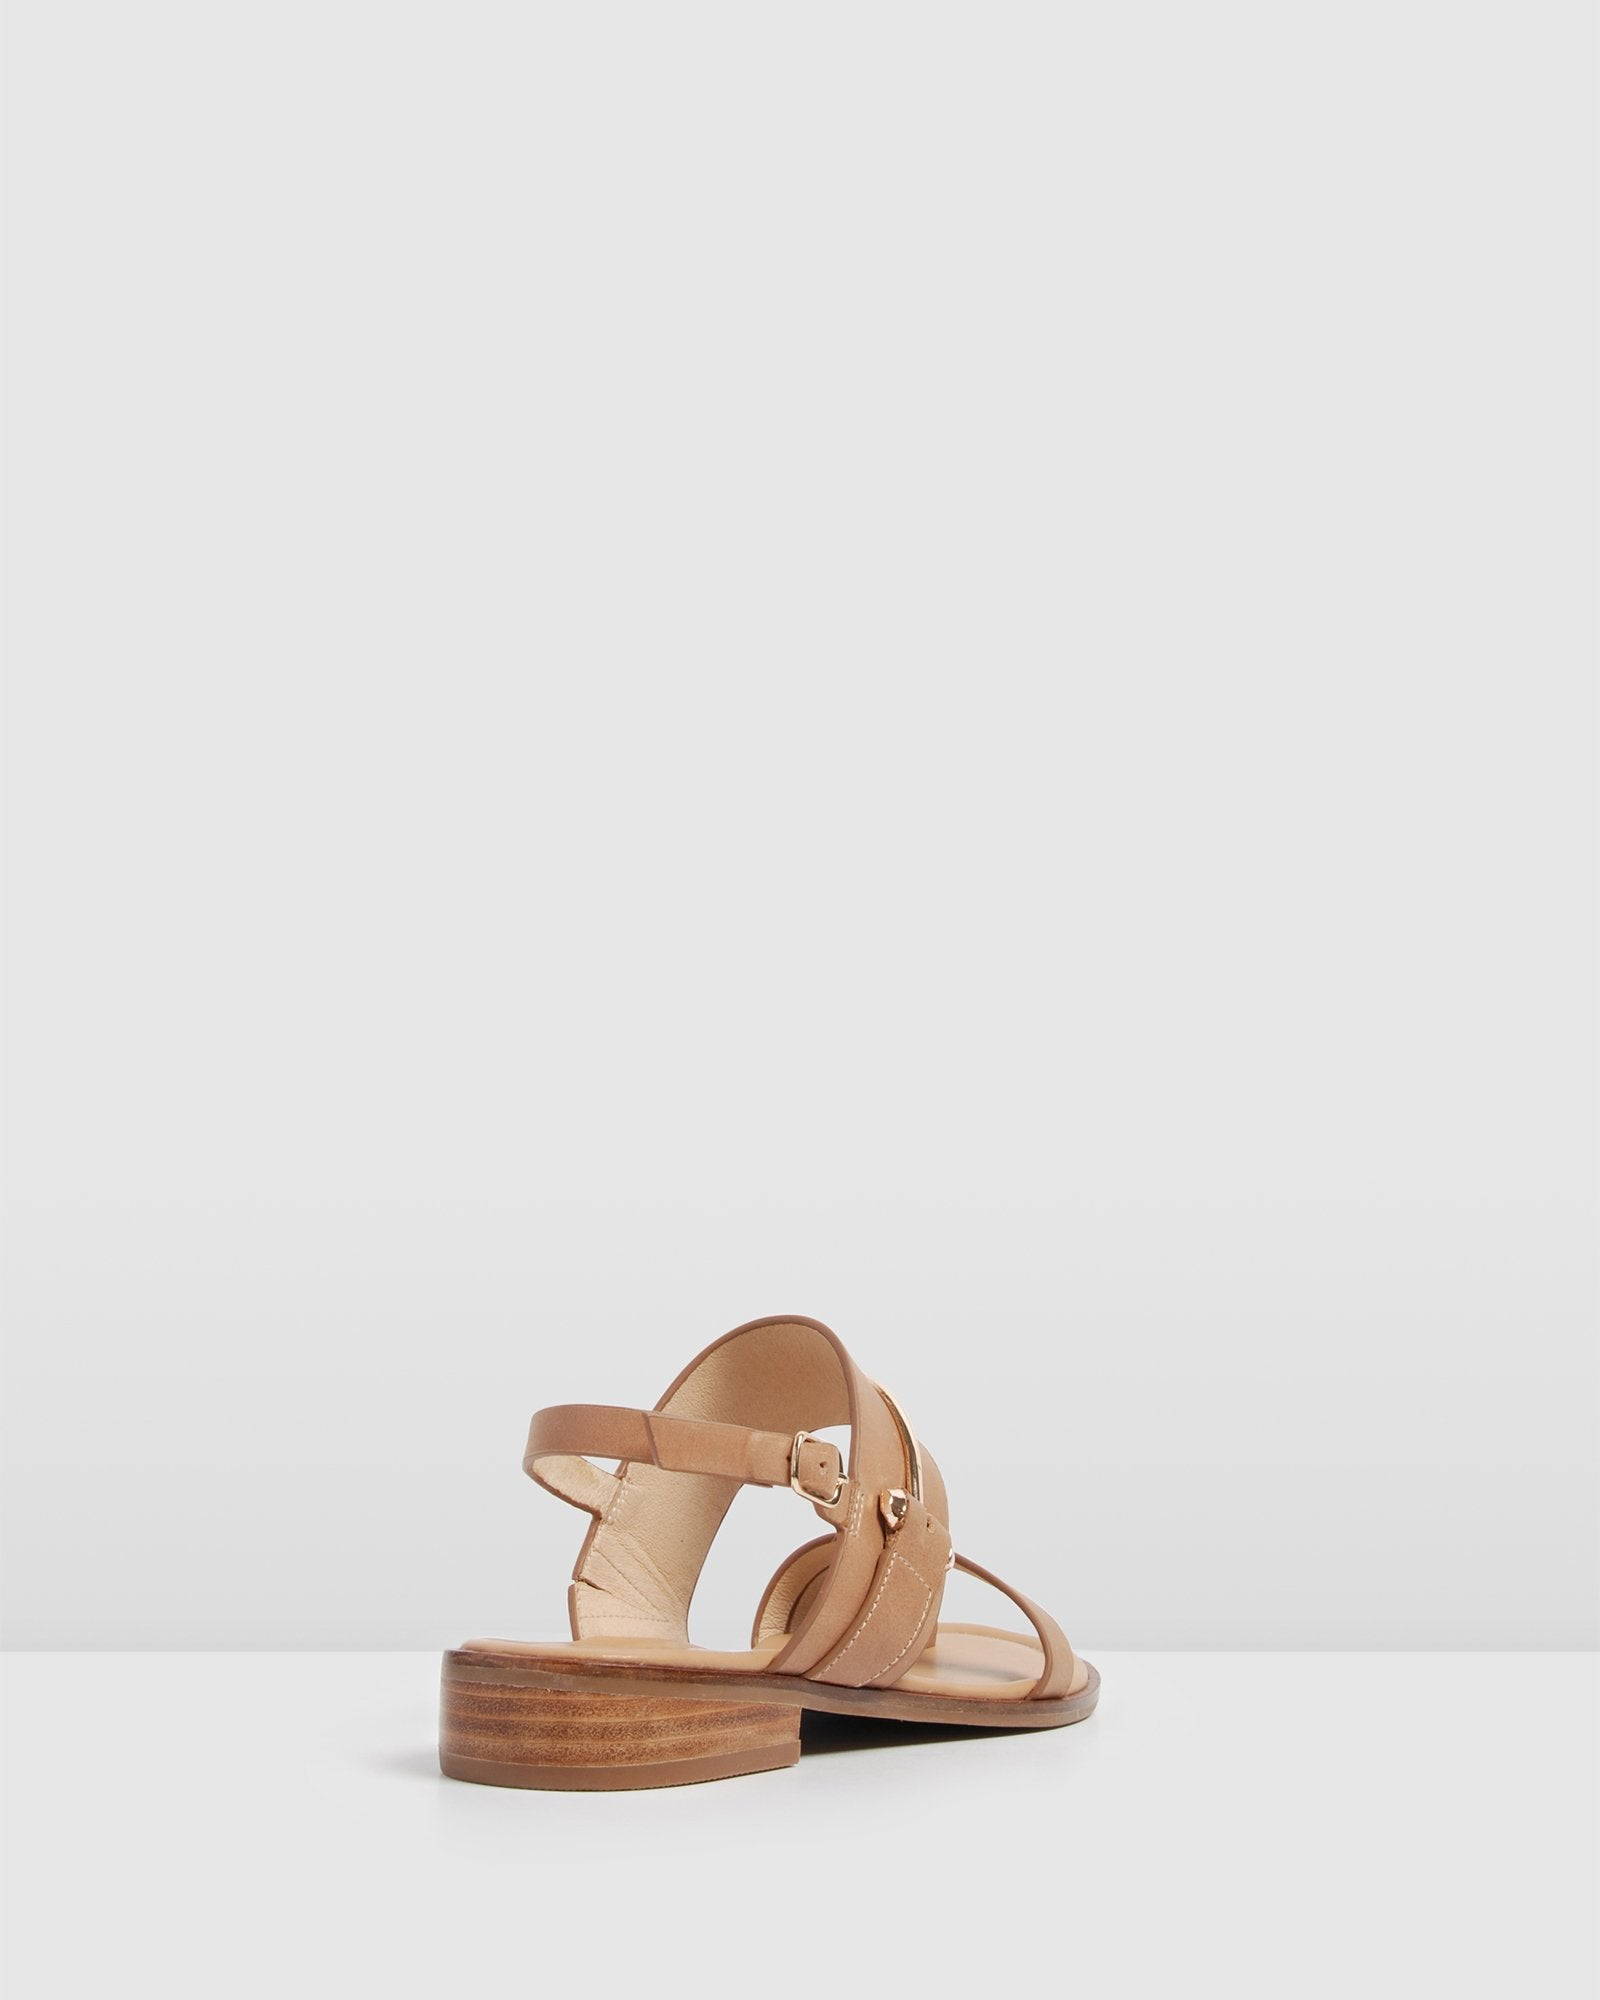 HAVEN FLAT SANDALS NATURAL LEATHER